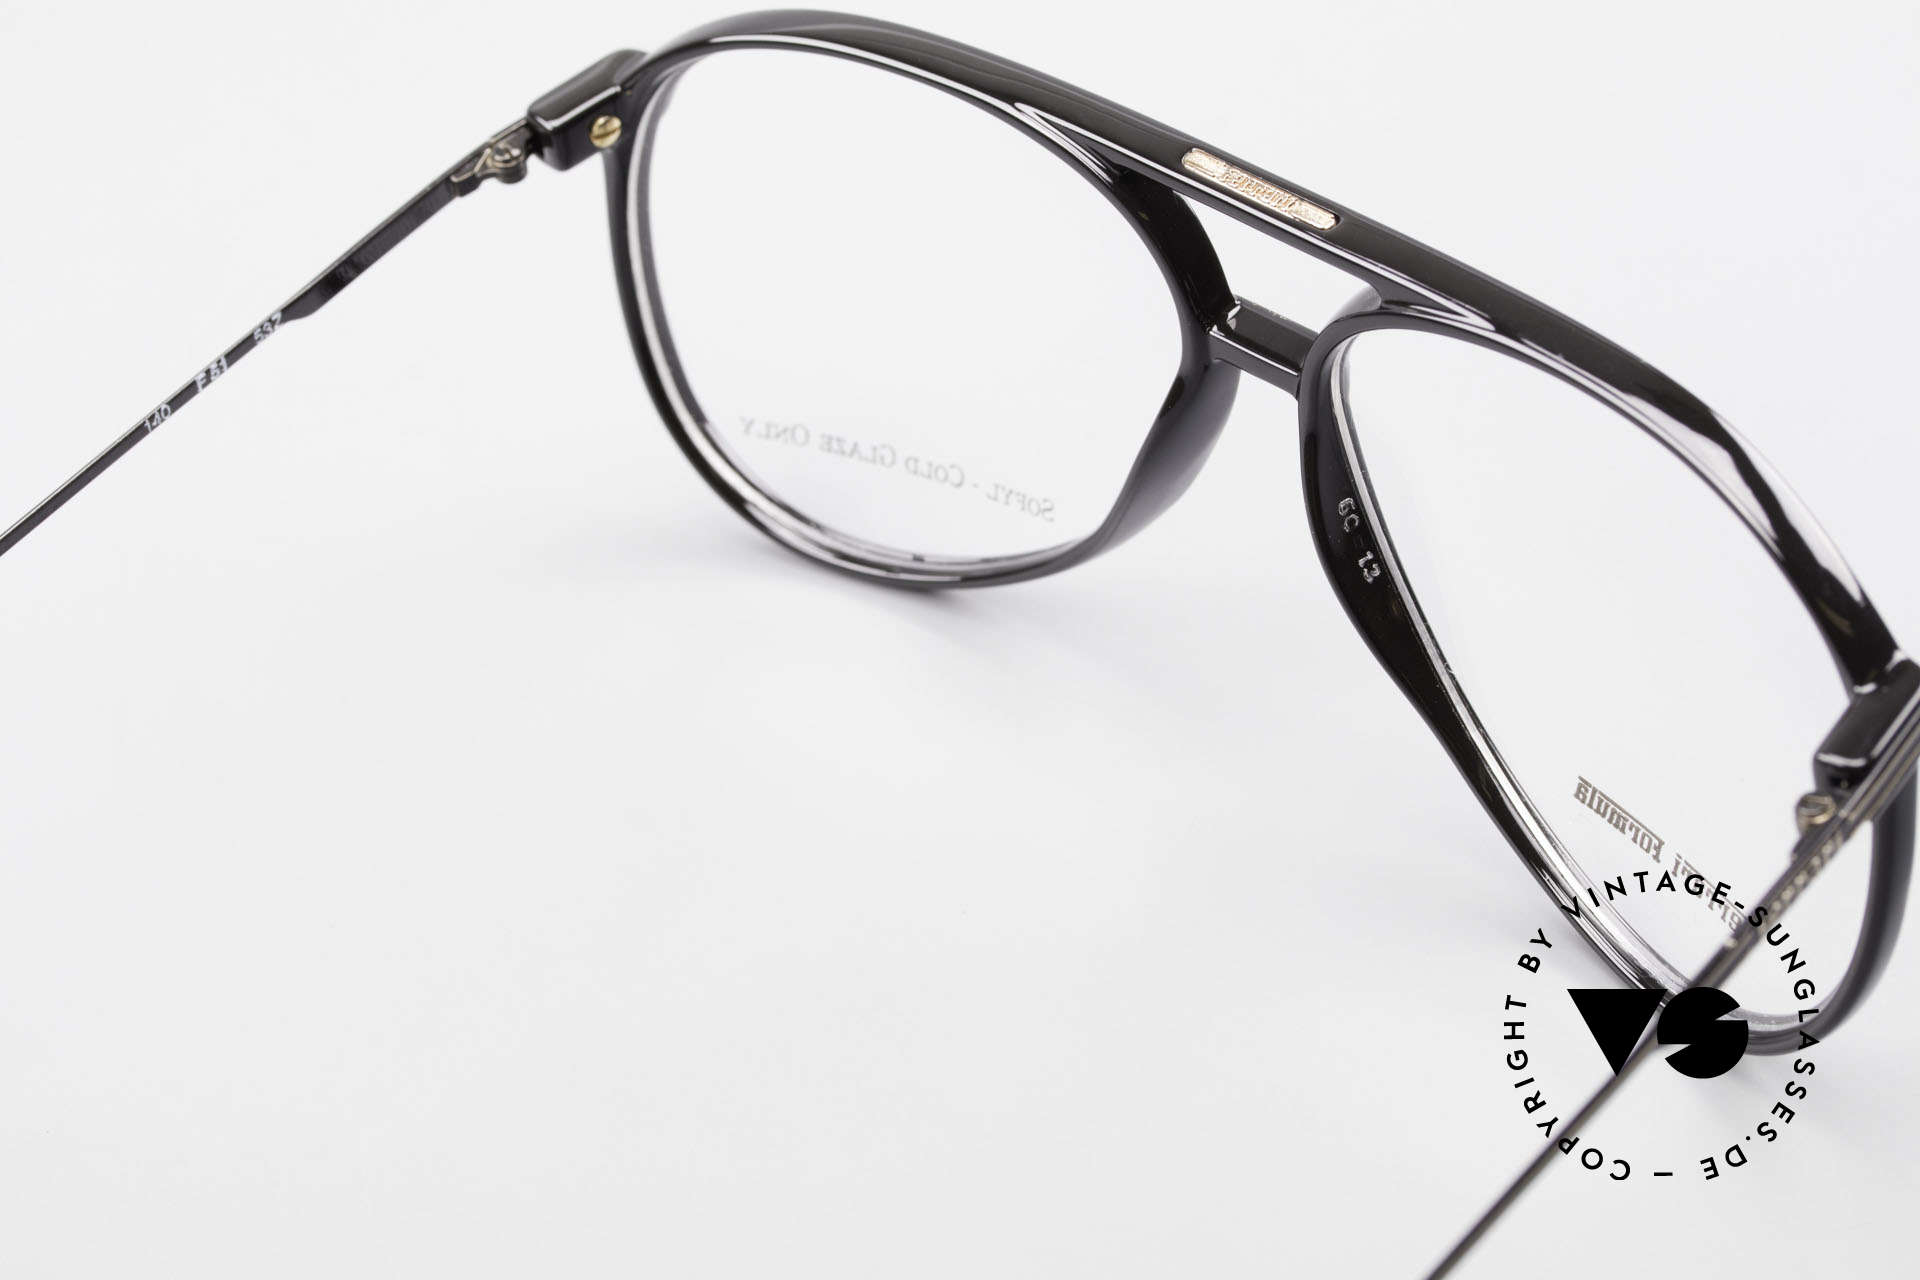 Ferrari F51 90's Formula 1 Racing Glasses, NO RETRO eyewear; but an old 1990's vintage rarity, Made for Men